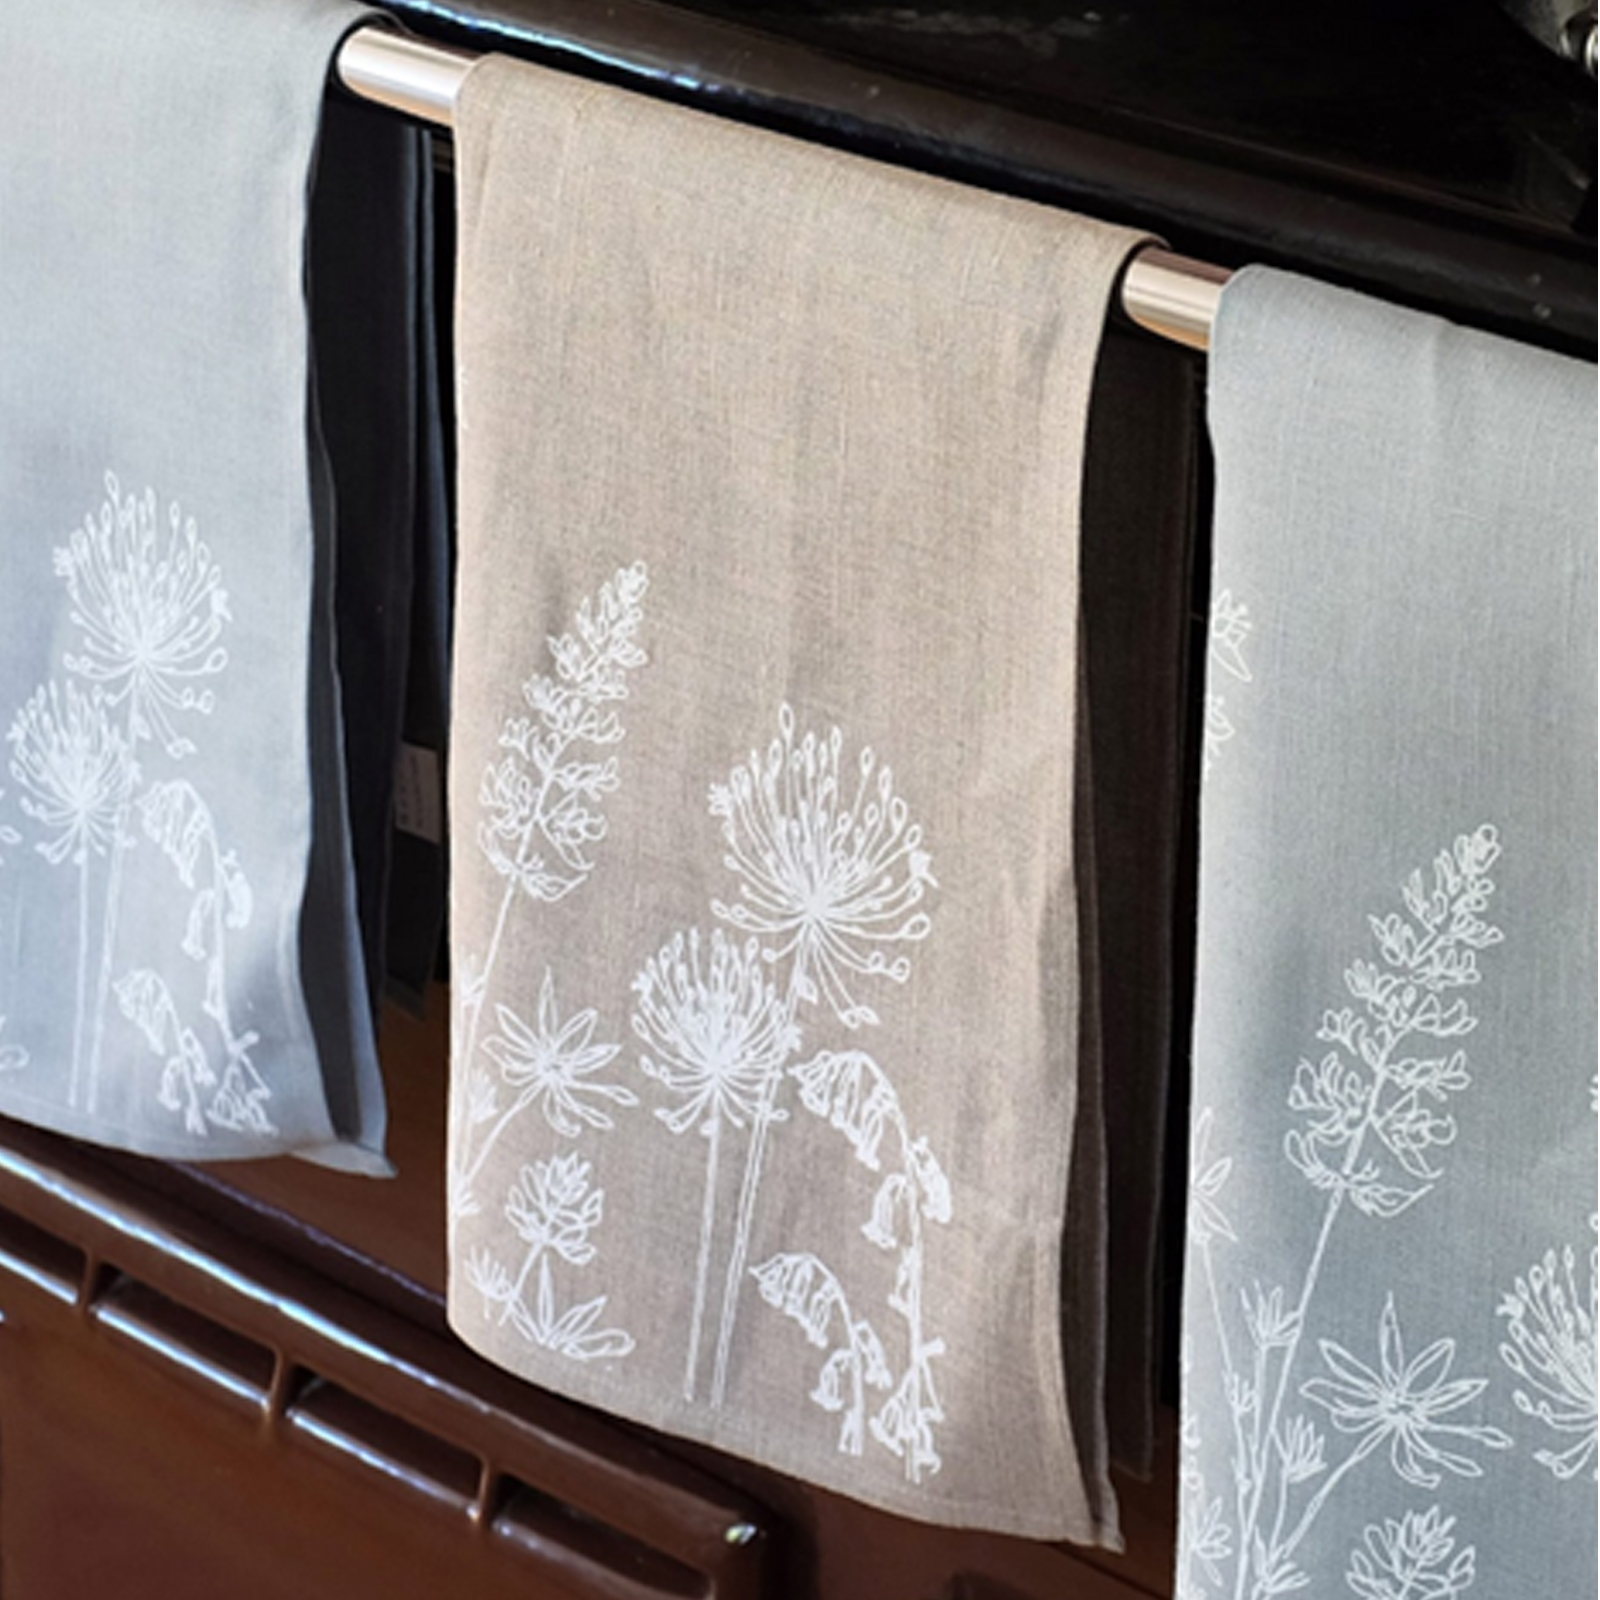 Hand Printed Linen Tea Towel by Helen Round - Country Garden Collection